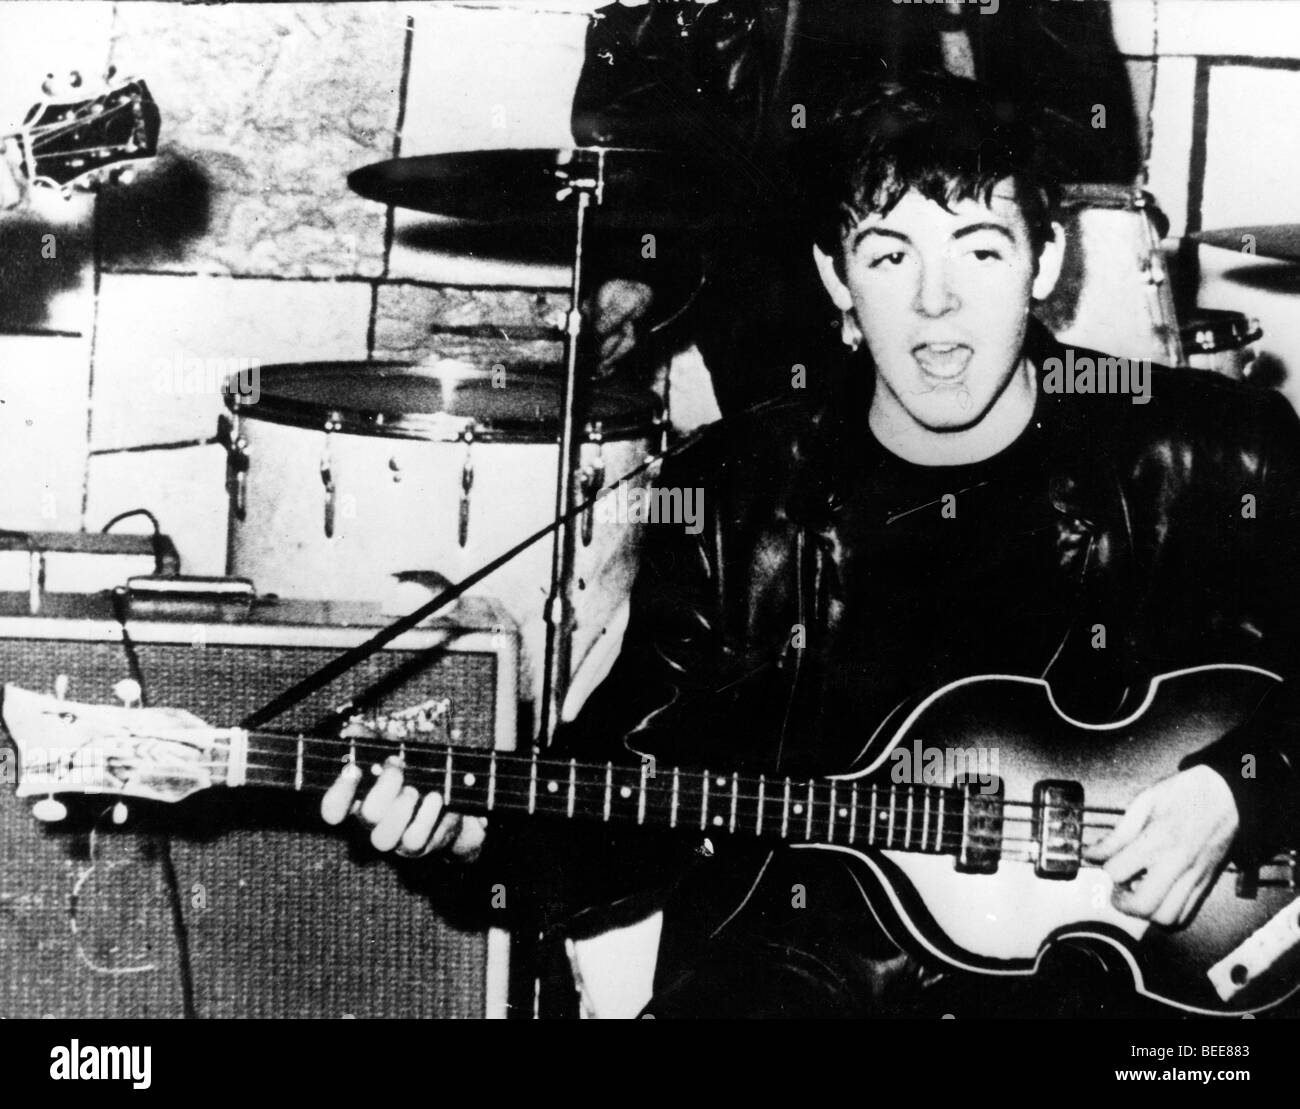 The Beatle's member Paul McCartney on stage at the Cavern - Stock Image